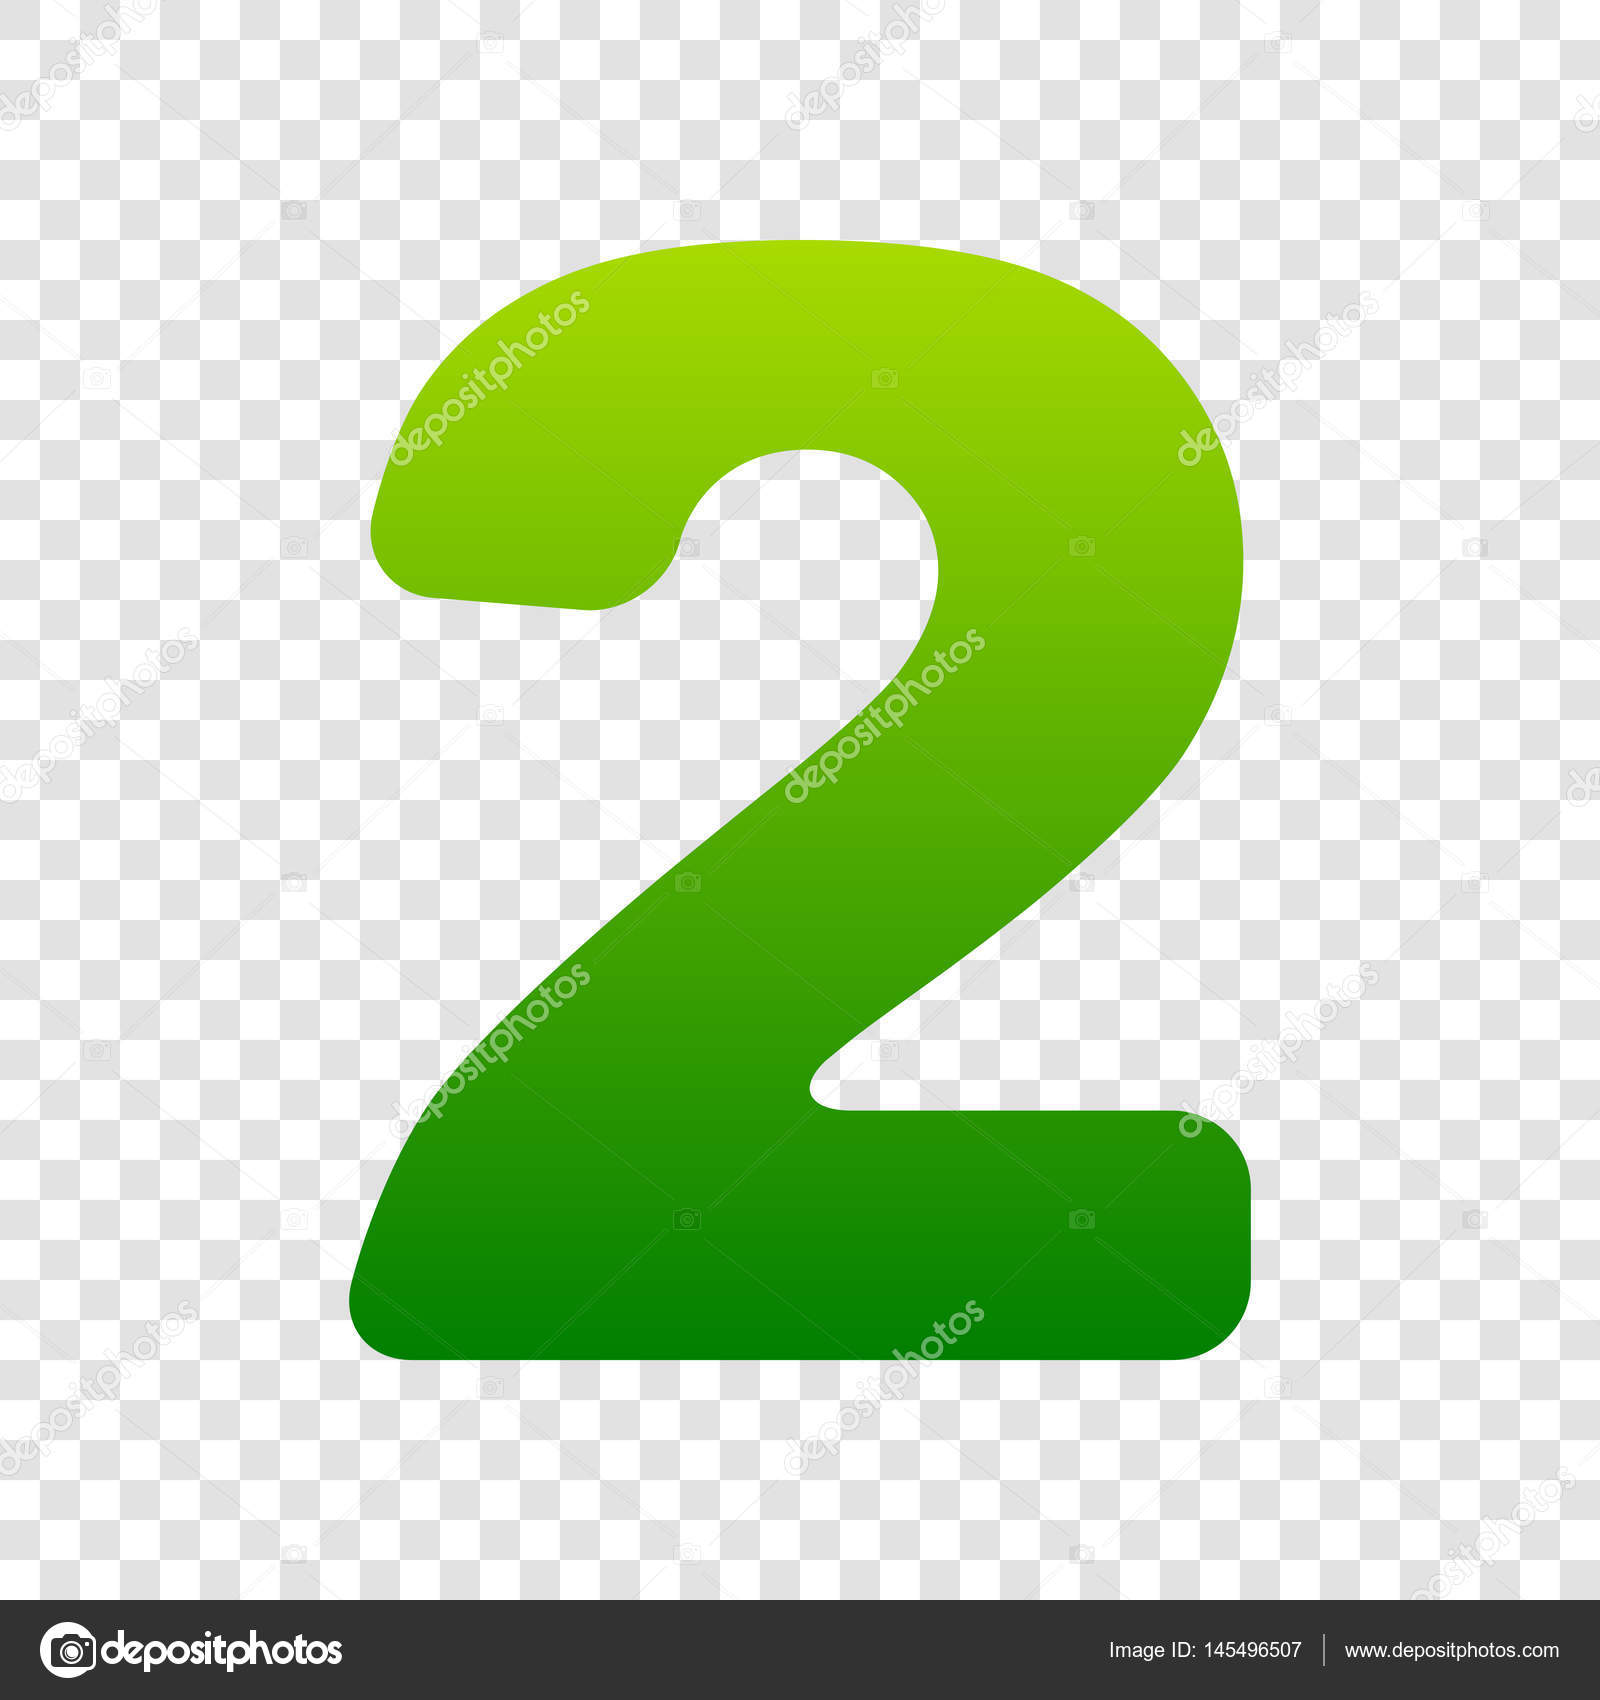 Number 2 sign design template elements vector green gradient number 2 sign design template elements vector green gradient icon on transparent background pronofoot35fo Image collections